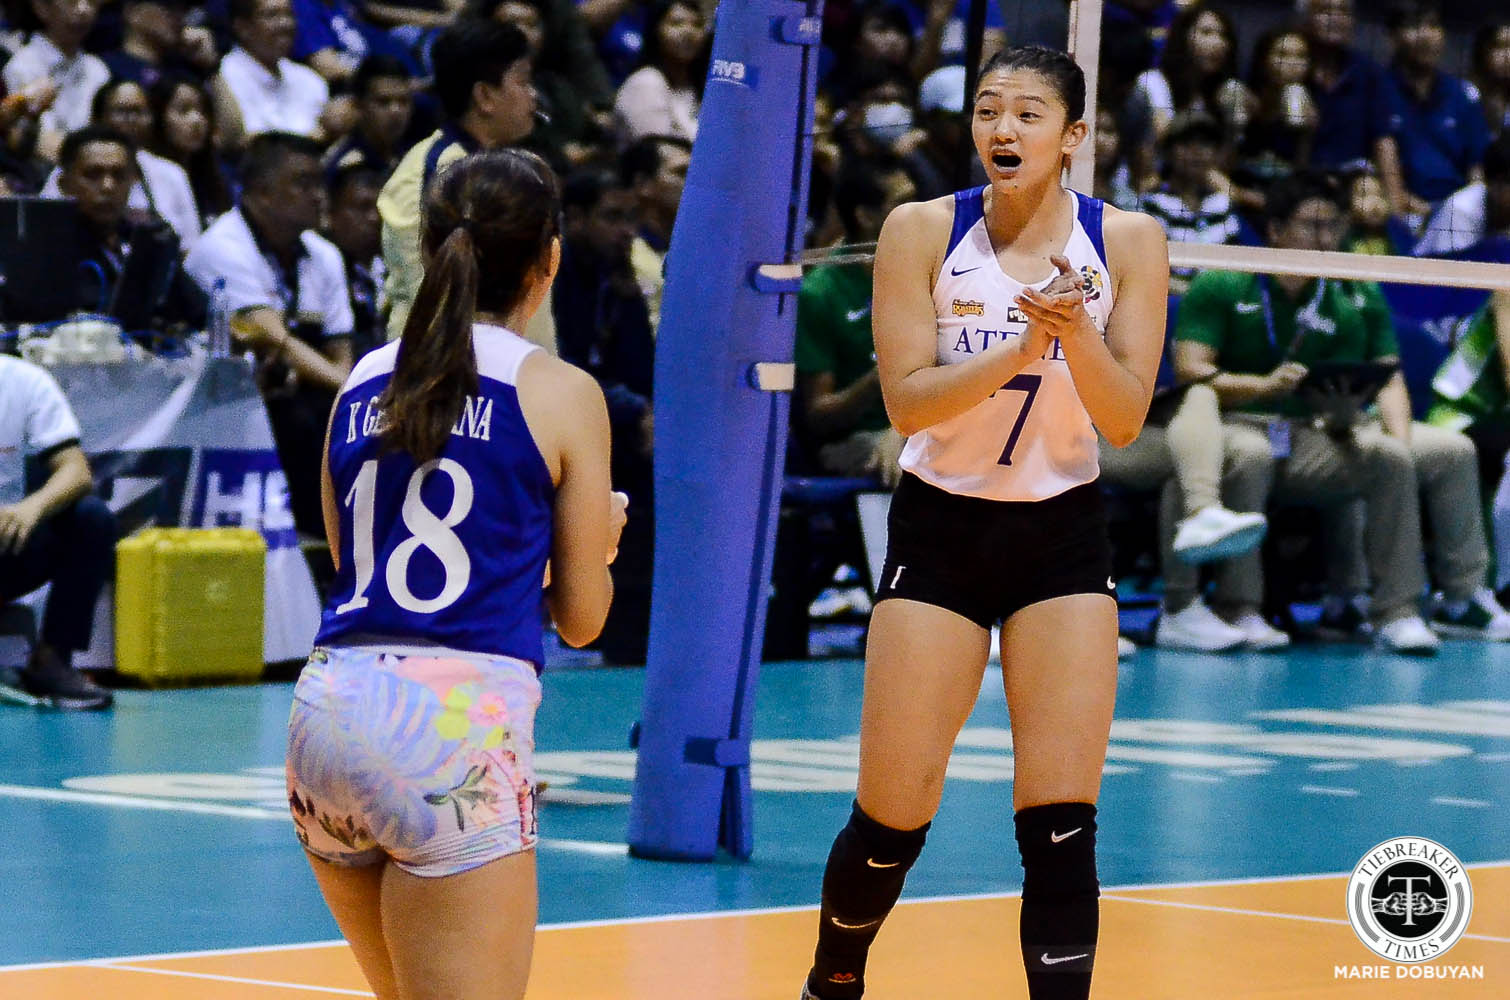 Tiebreaker Times Zero blocks not a worry for Madayag, Tolentino, De Leon ADMU News UAAP Volleyball  UAAP Season 81 Women's Volleyball UAAP Season 81 Maddie Madayag Kat Tolentino Bea De Leon Ateneo Women's Volleyball